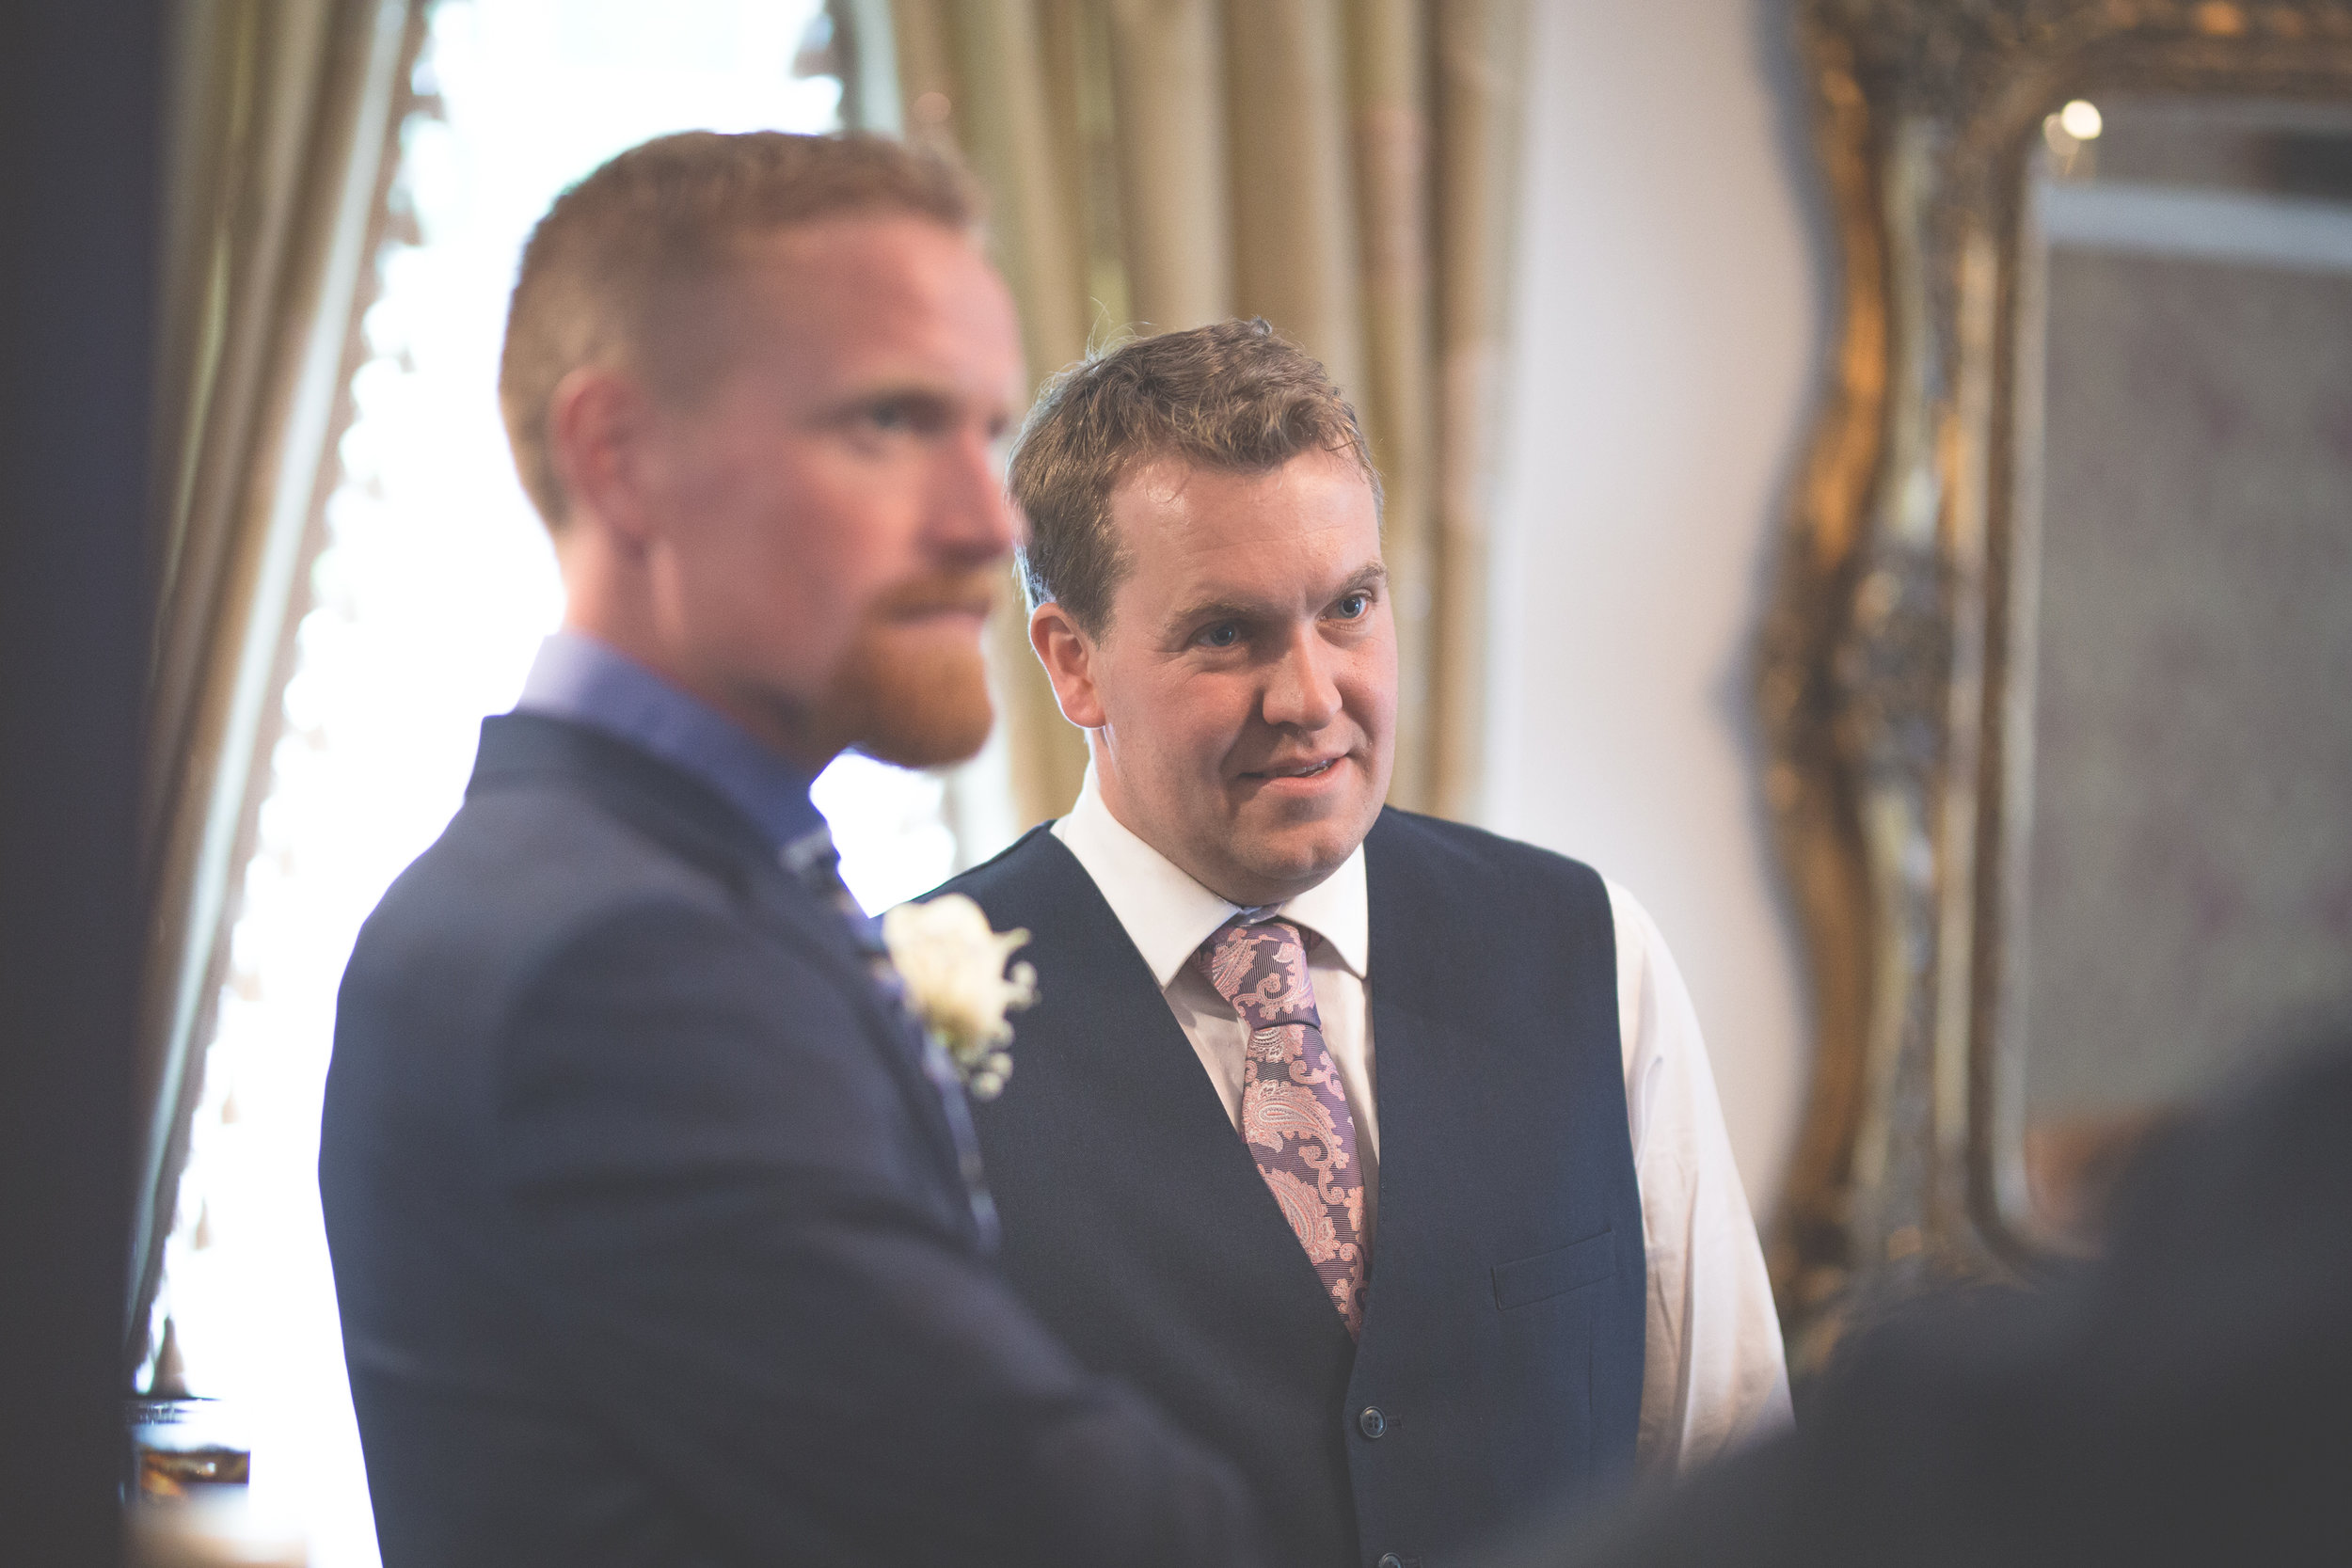 Northern Ireland Wedding Photographer | Brian McEwan | Louise & Darren-107.jpg